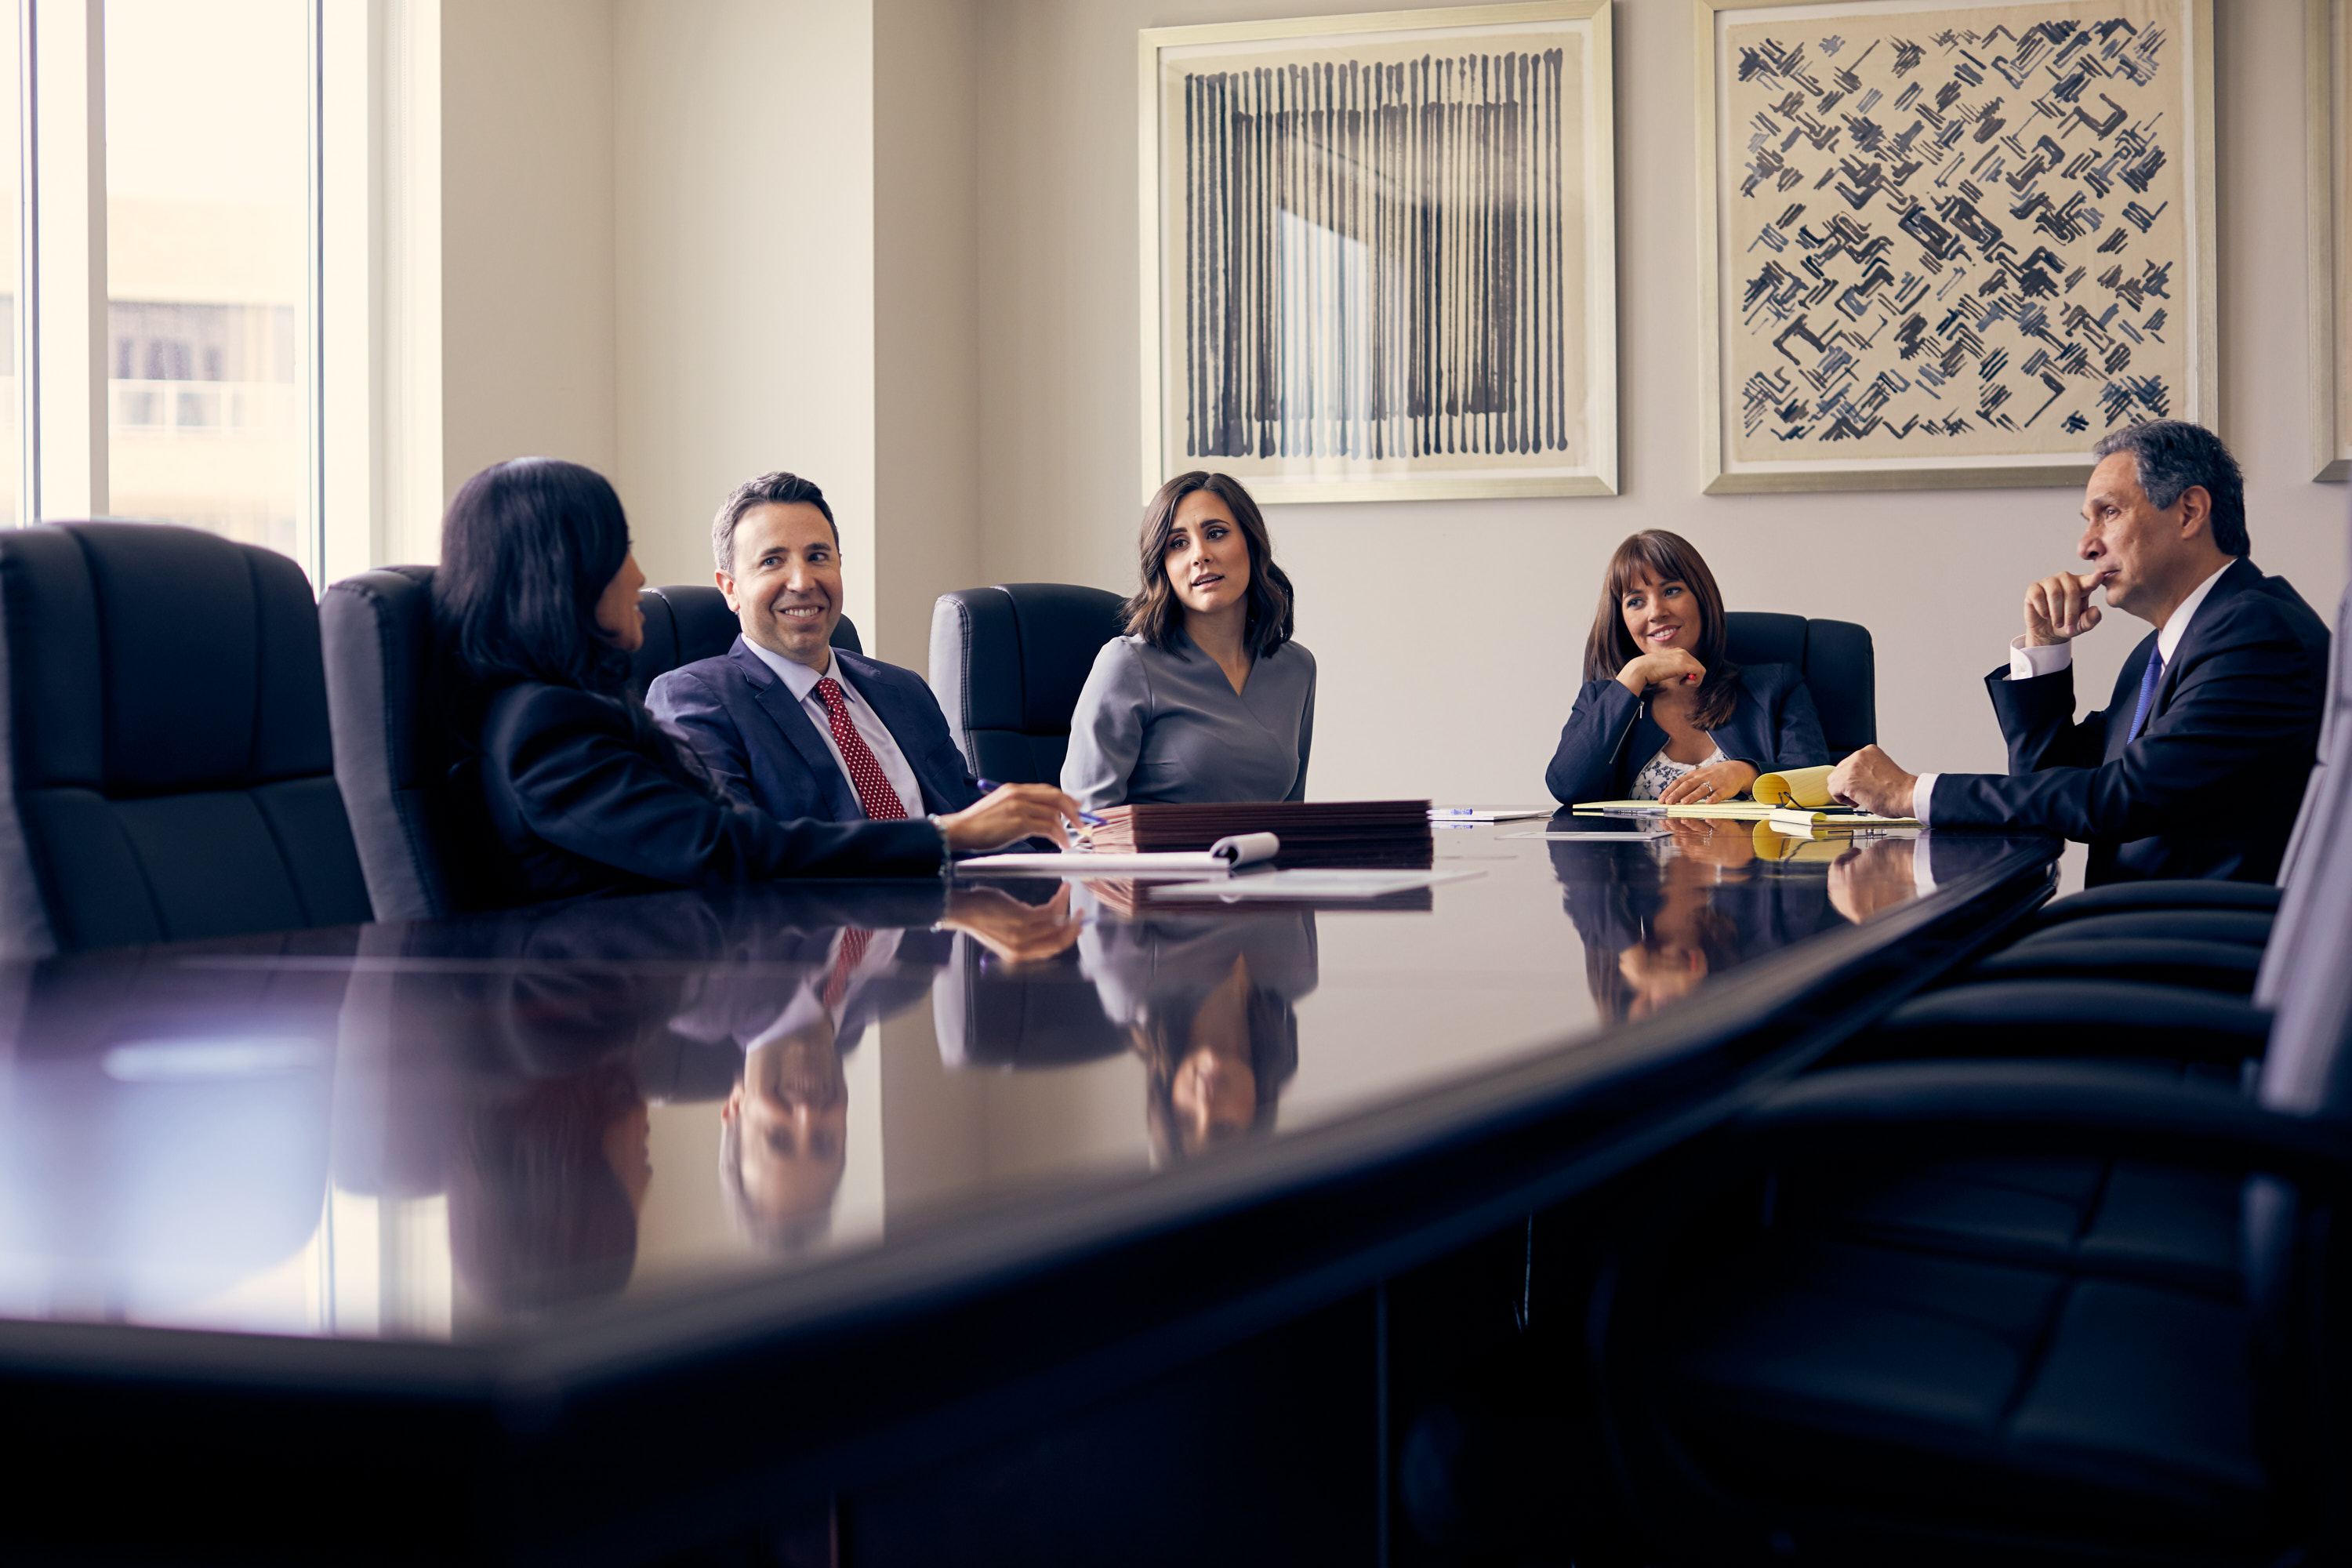 Corporate Photography | Professionals at Conference Table